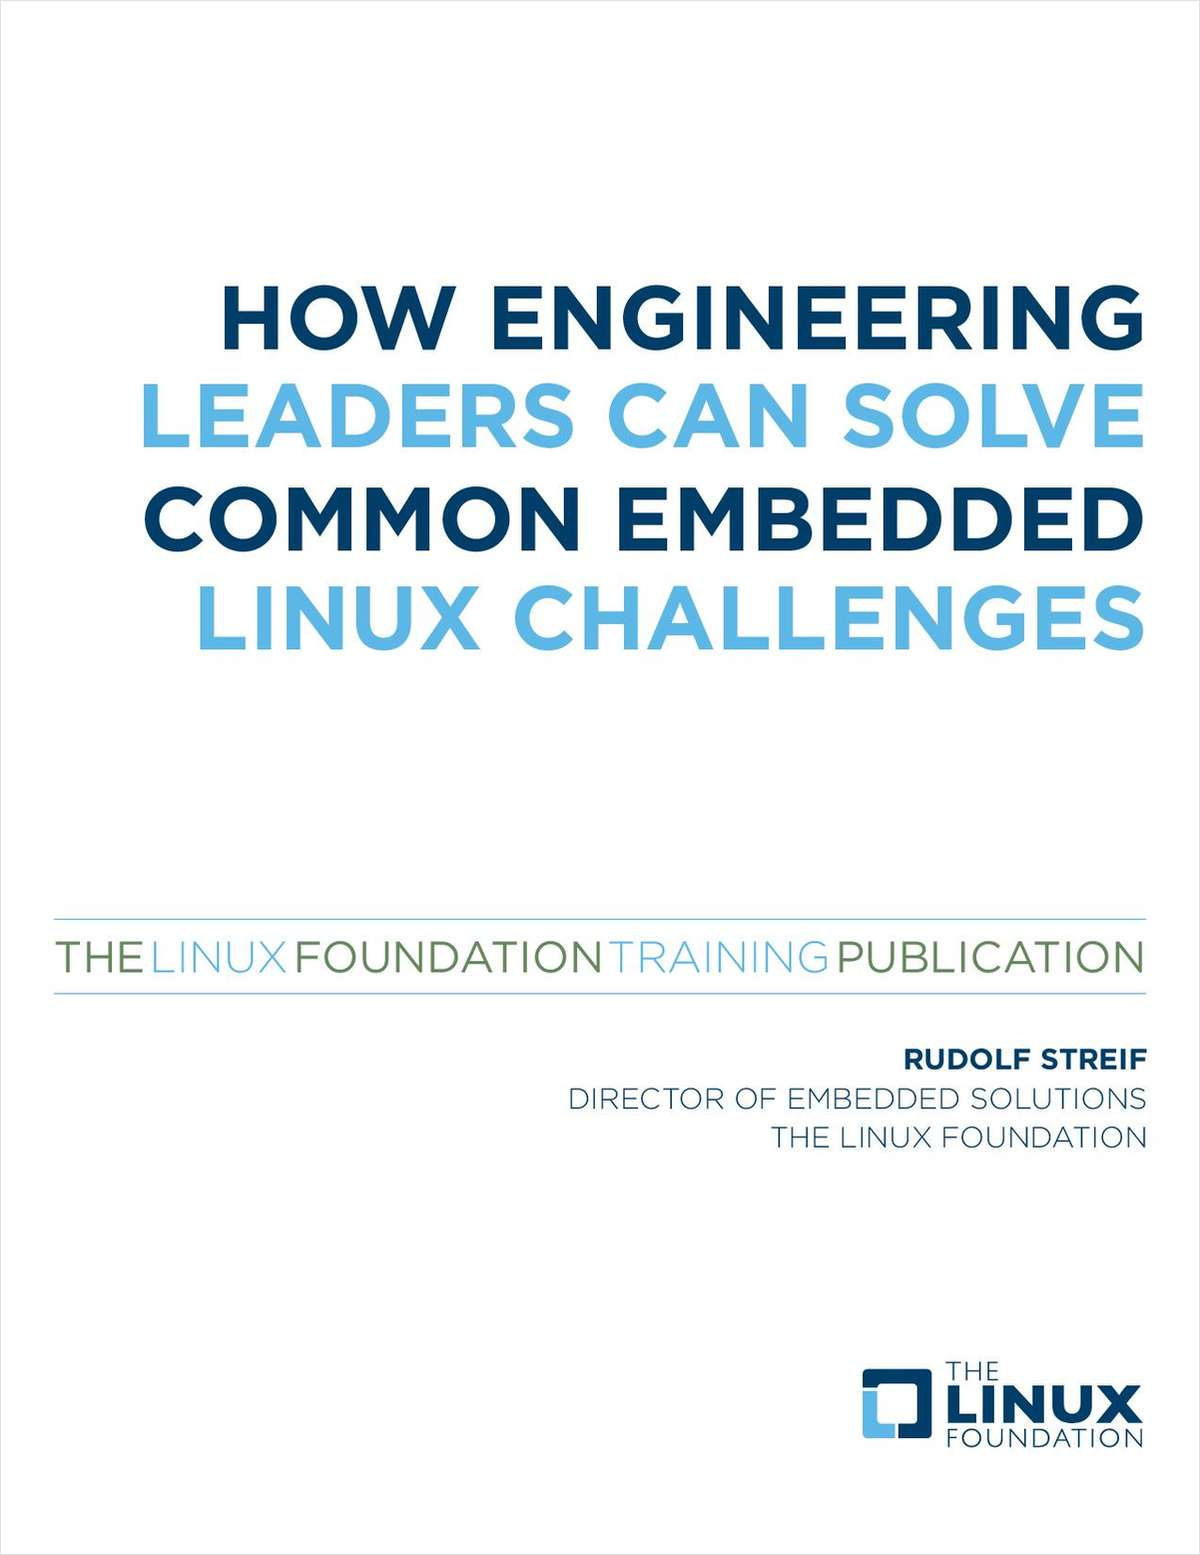 How Engineering Leaders Can Solve Common Embedded Linux Challenges